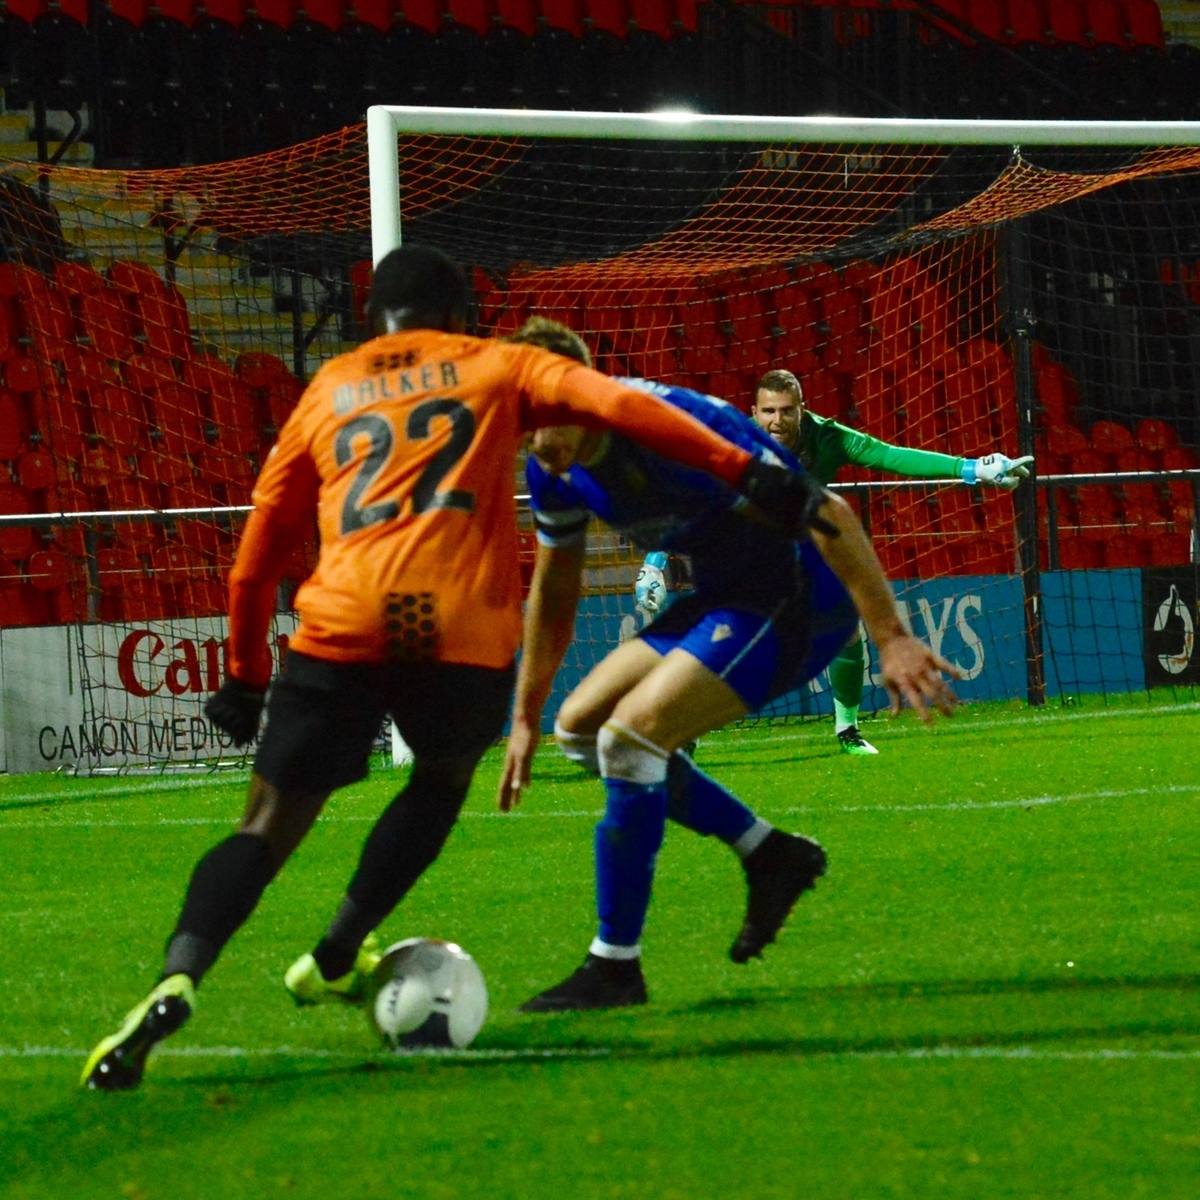 Barnet suffer late heartbreak as Stockport County snatch win at the death - Times Series